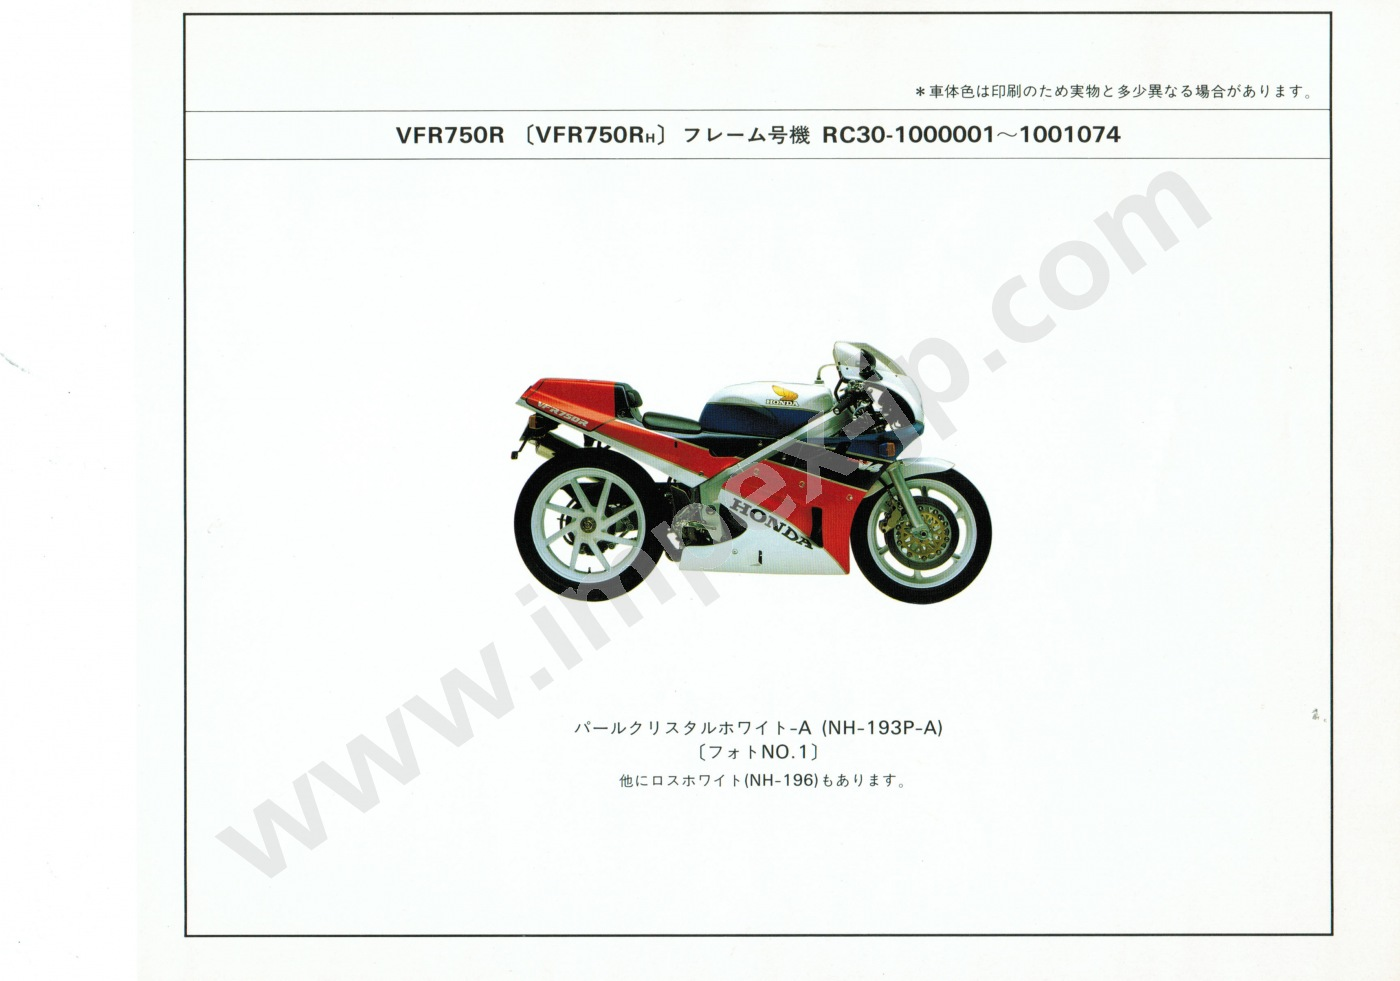 yamaha motorcycles parts and accessories